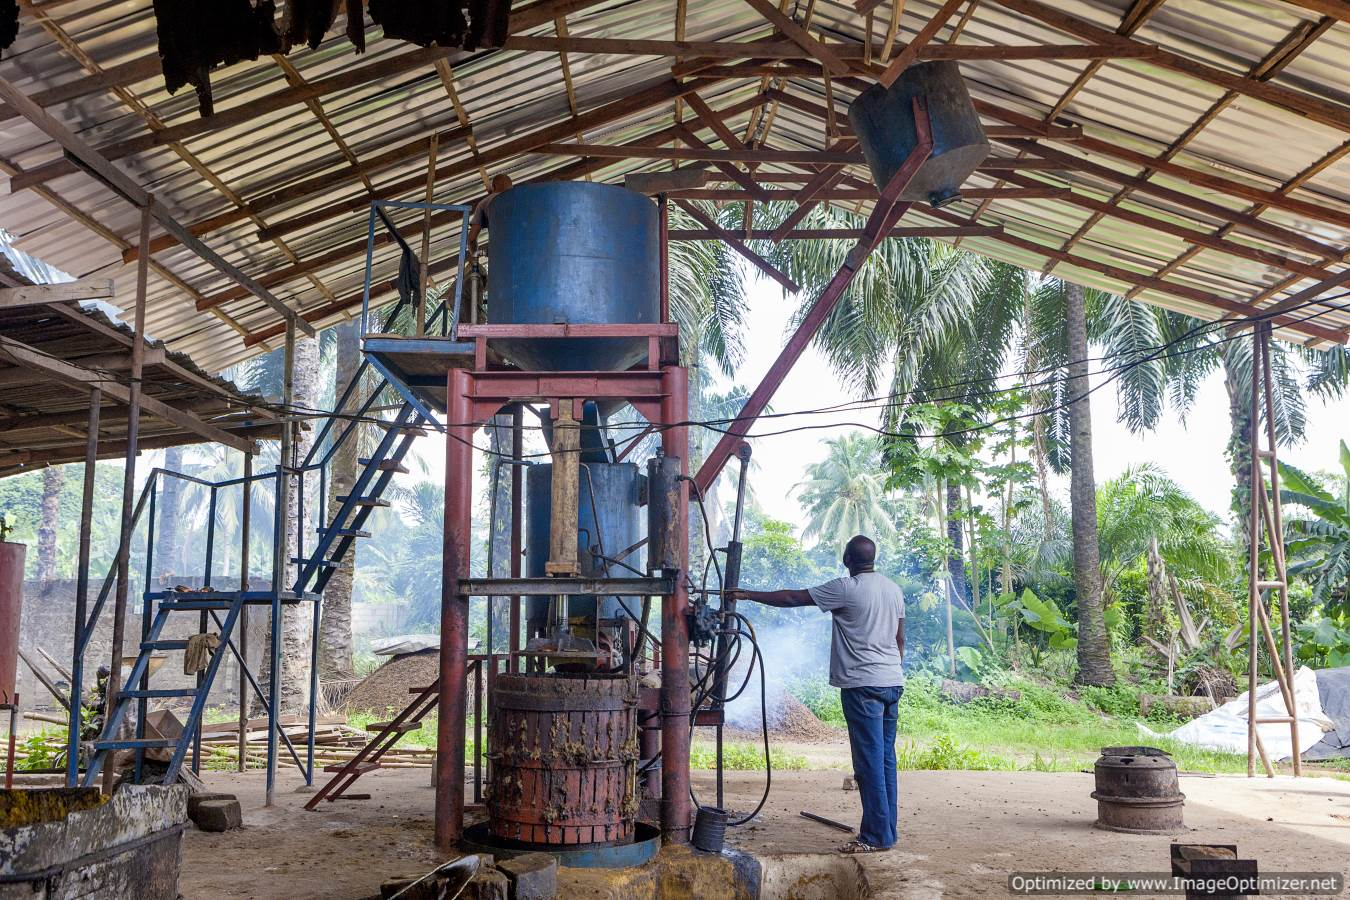 Small-Scale Processing Equipment (SSPE) — PIND Foundation